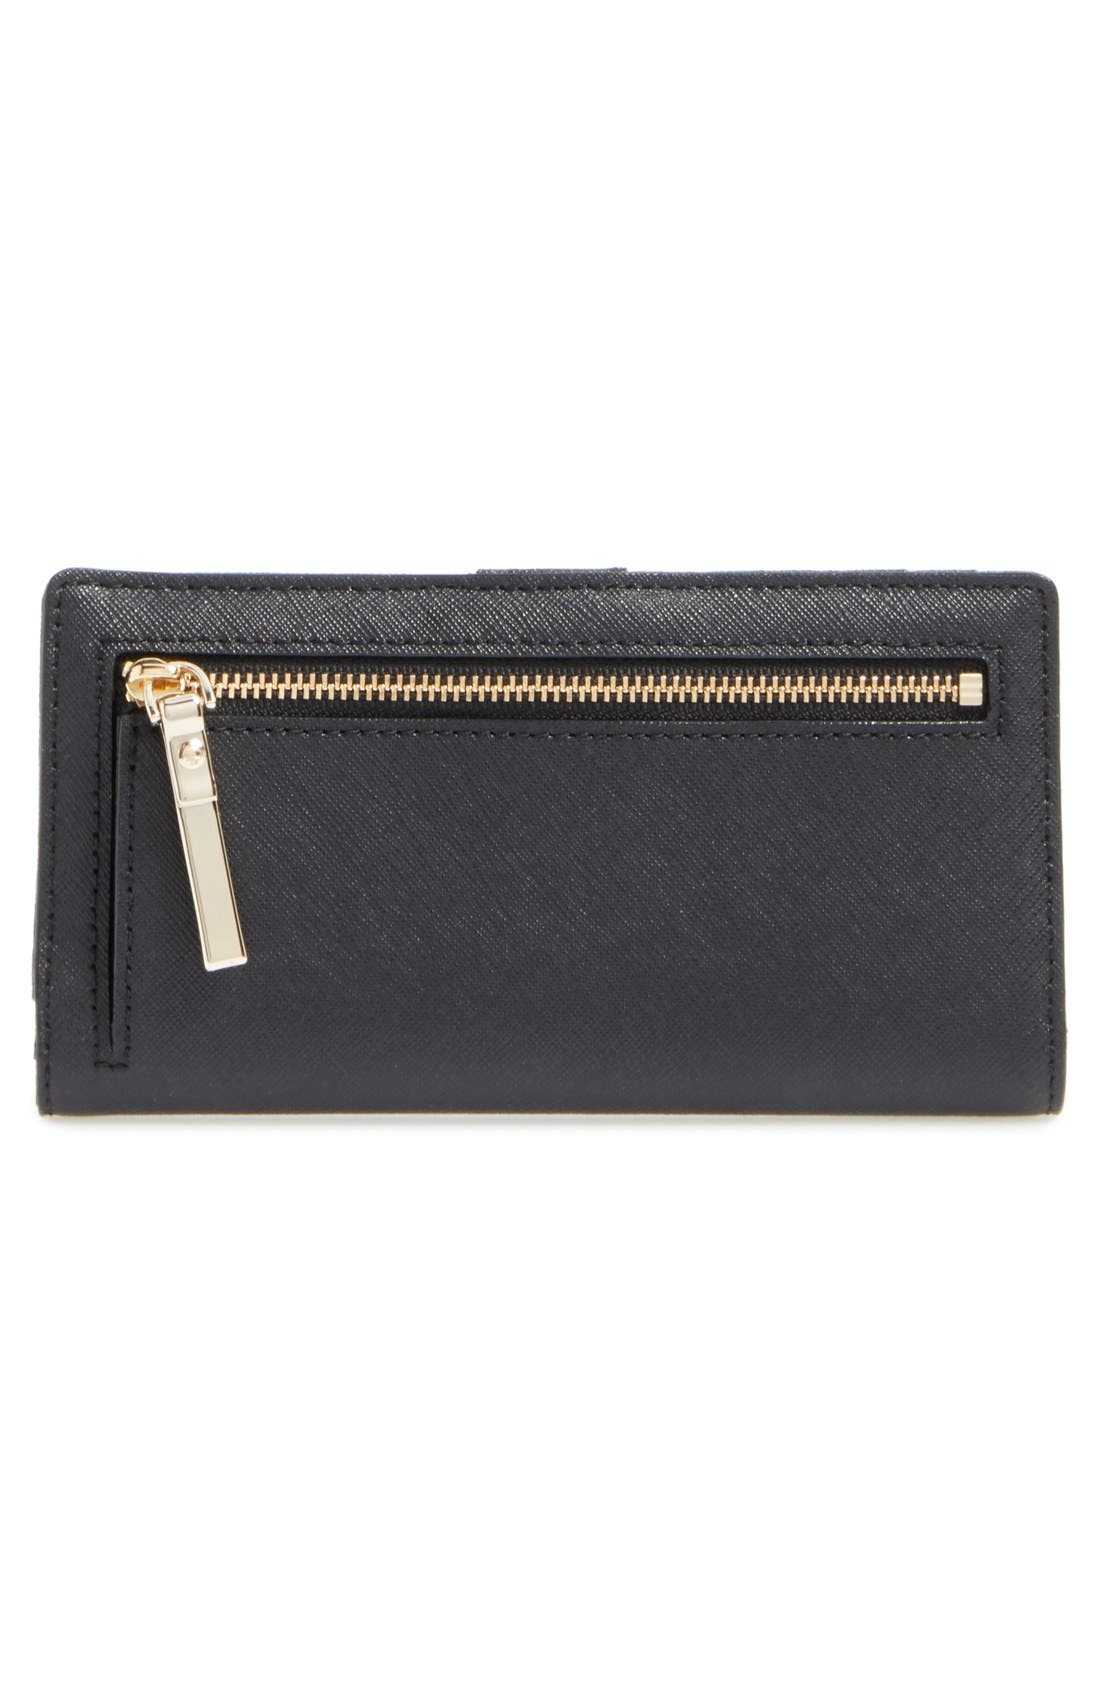 'cameron street - stacy' textured leather wallet,                             Alternate thumbnail 4, color,                             Black